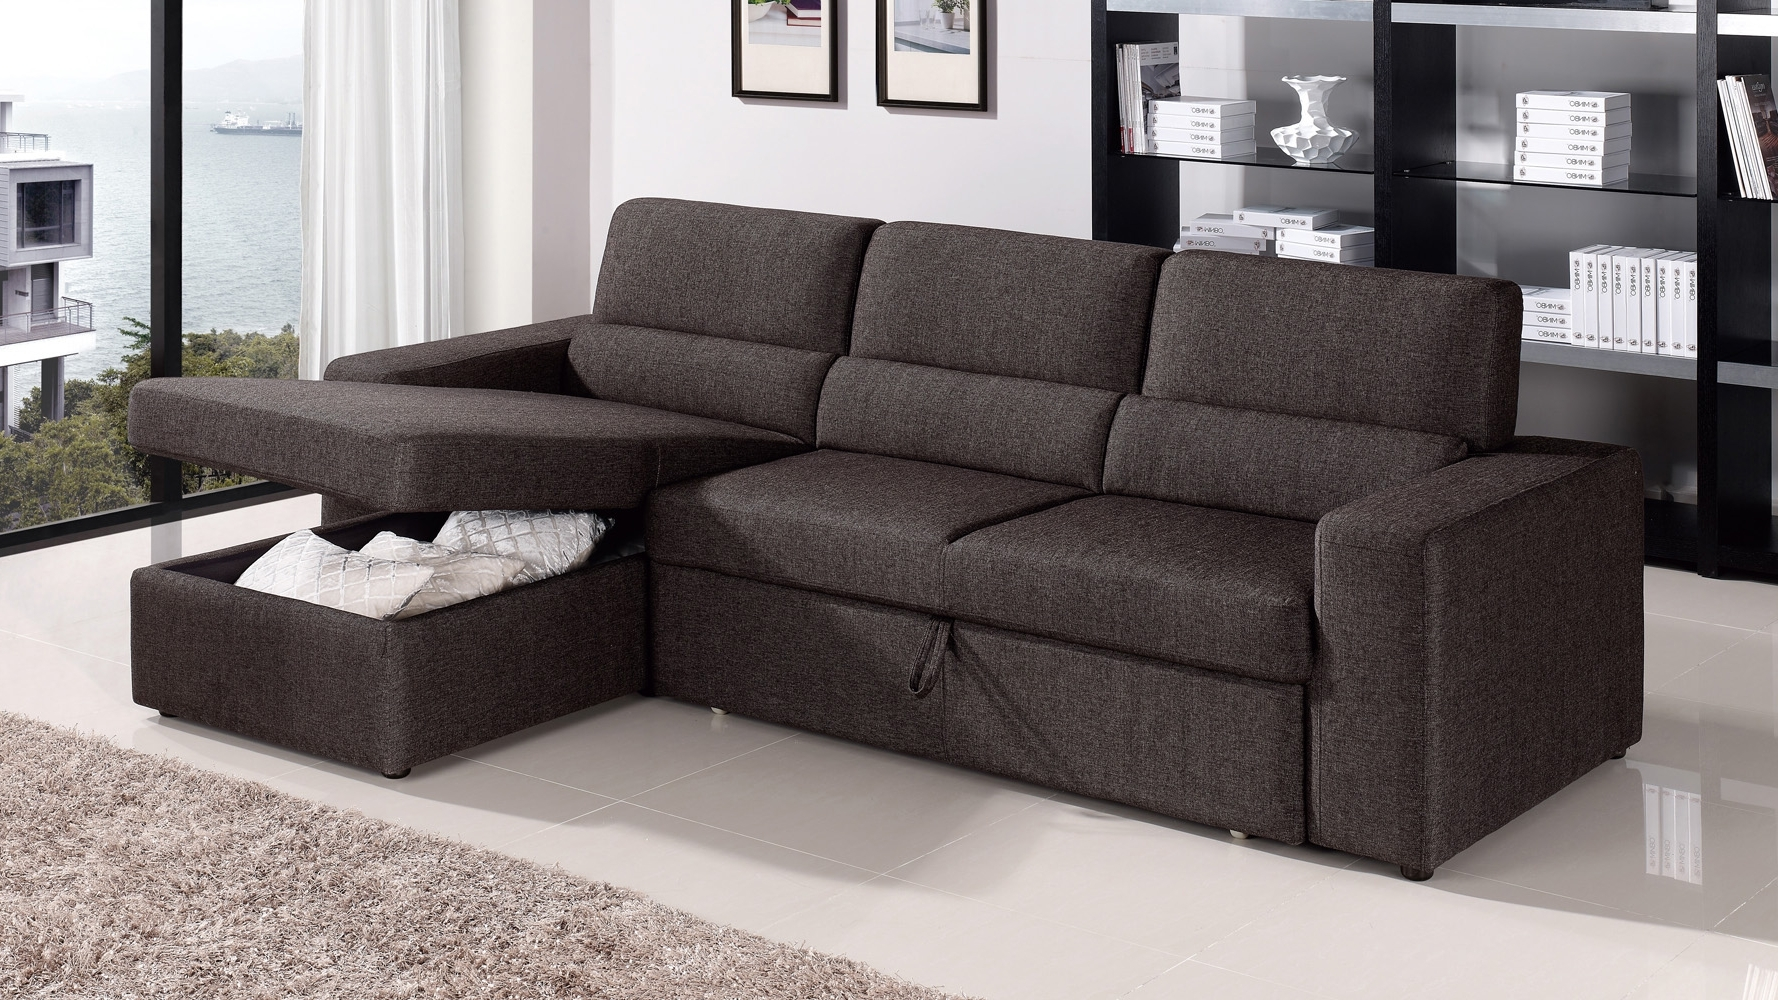 Fashionable Lancaster Pa Sectional Sofas With Regard To Furniture : Sleeper Sofa Portland Or Mattress Firm Zoominfo (View 20 of 20)